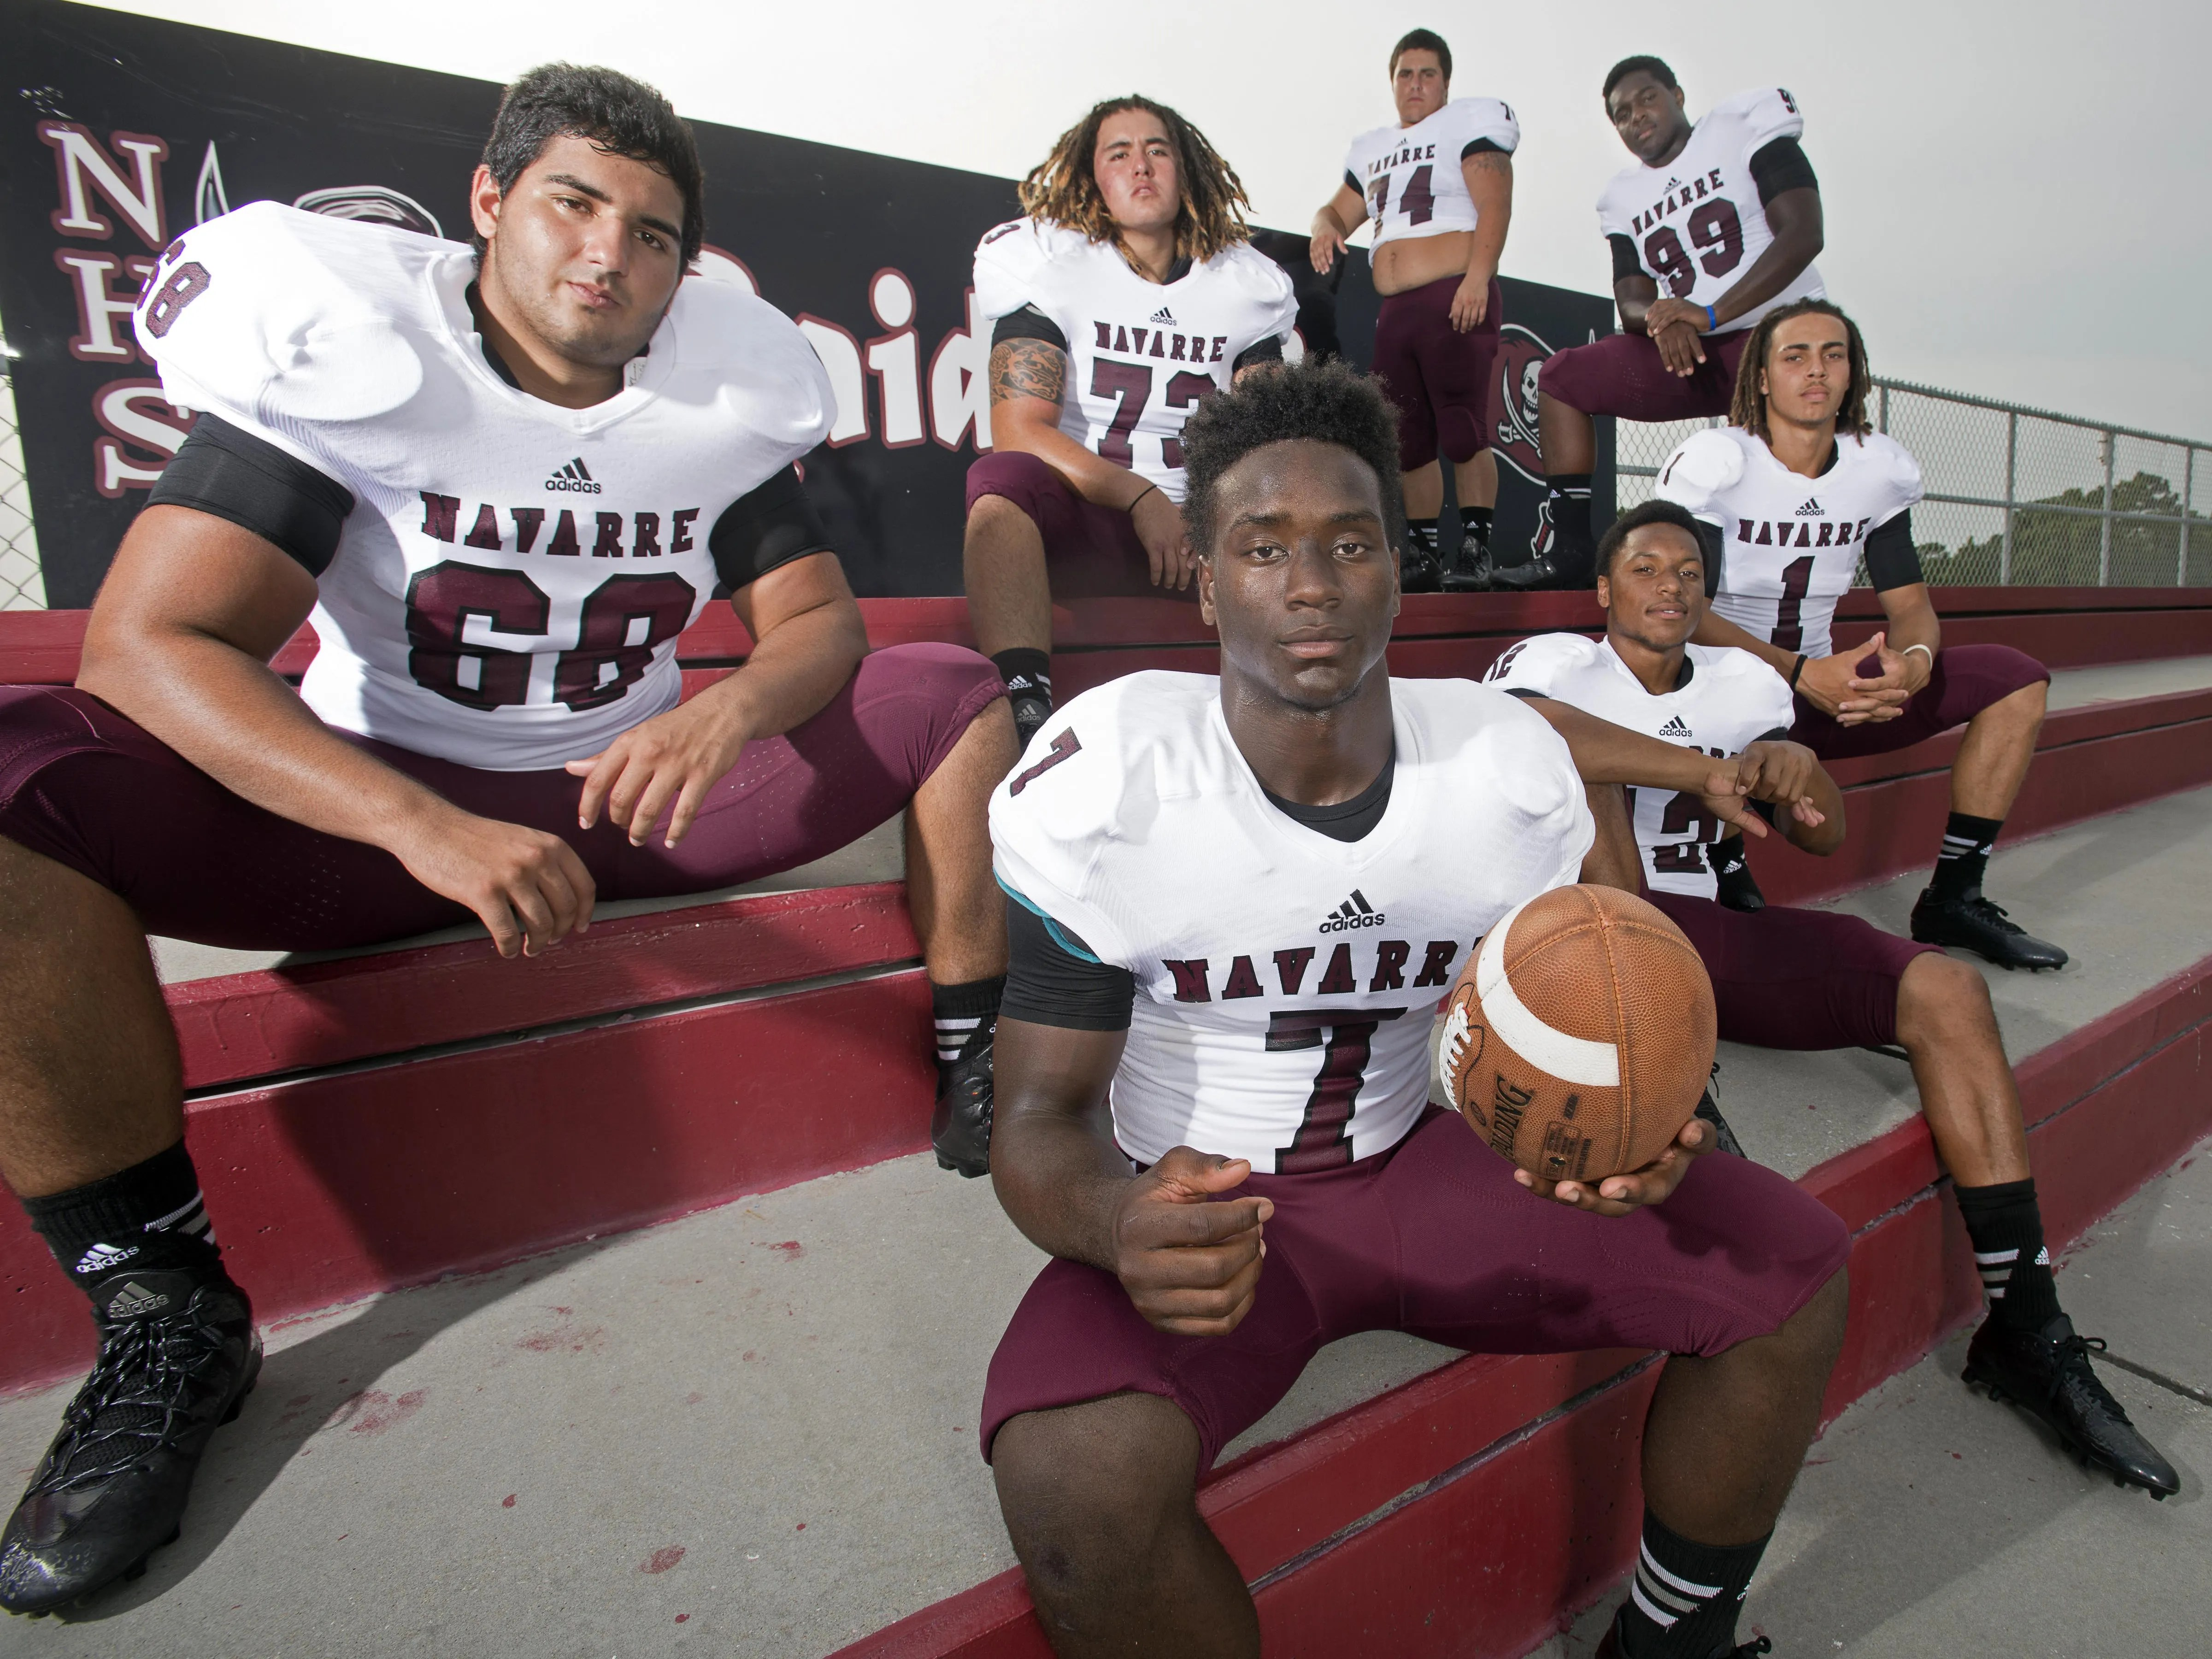 Navarre football ready to take success even further  USA